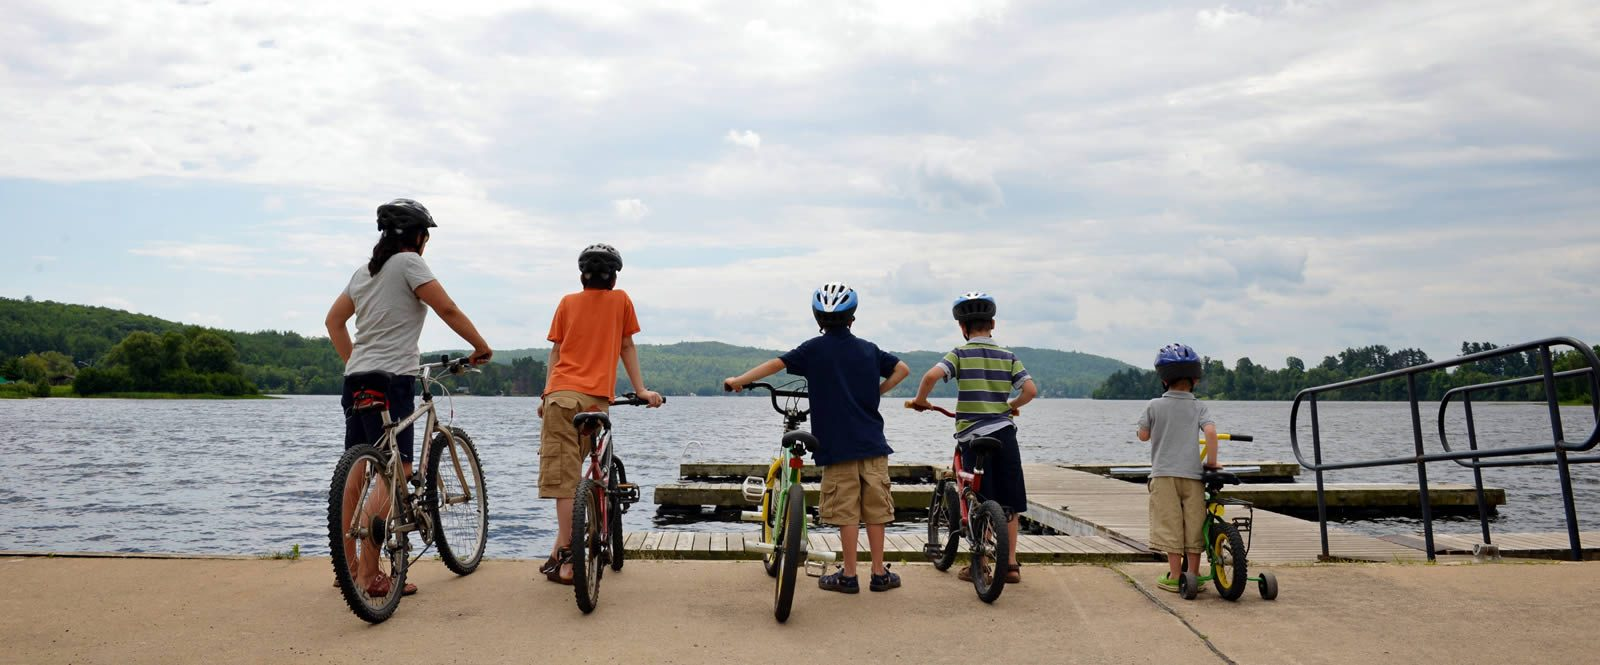 Kids look at the lake holding onto bikes